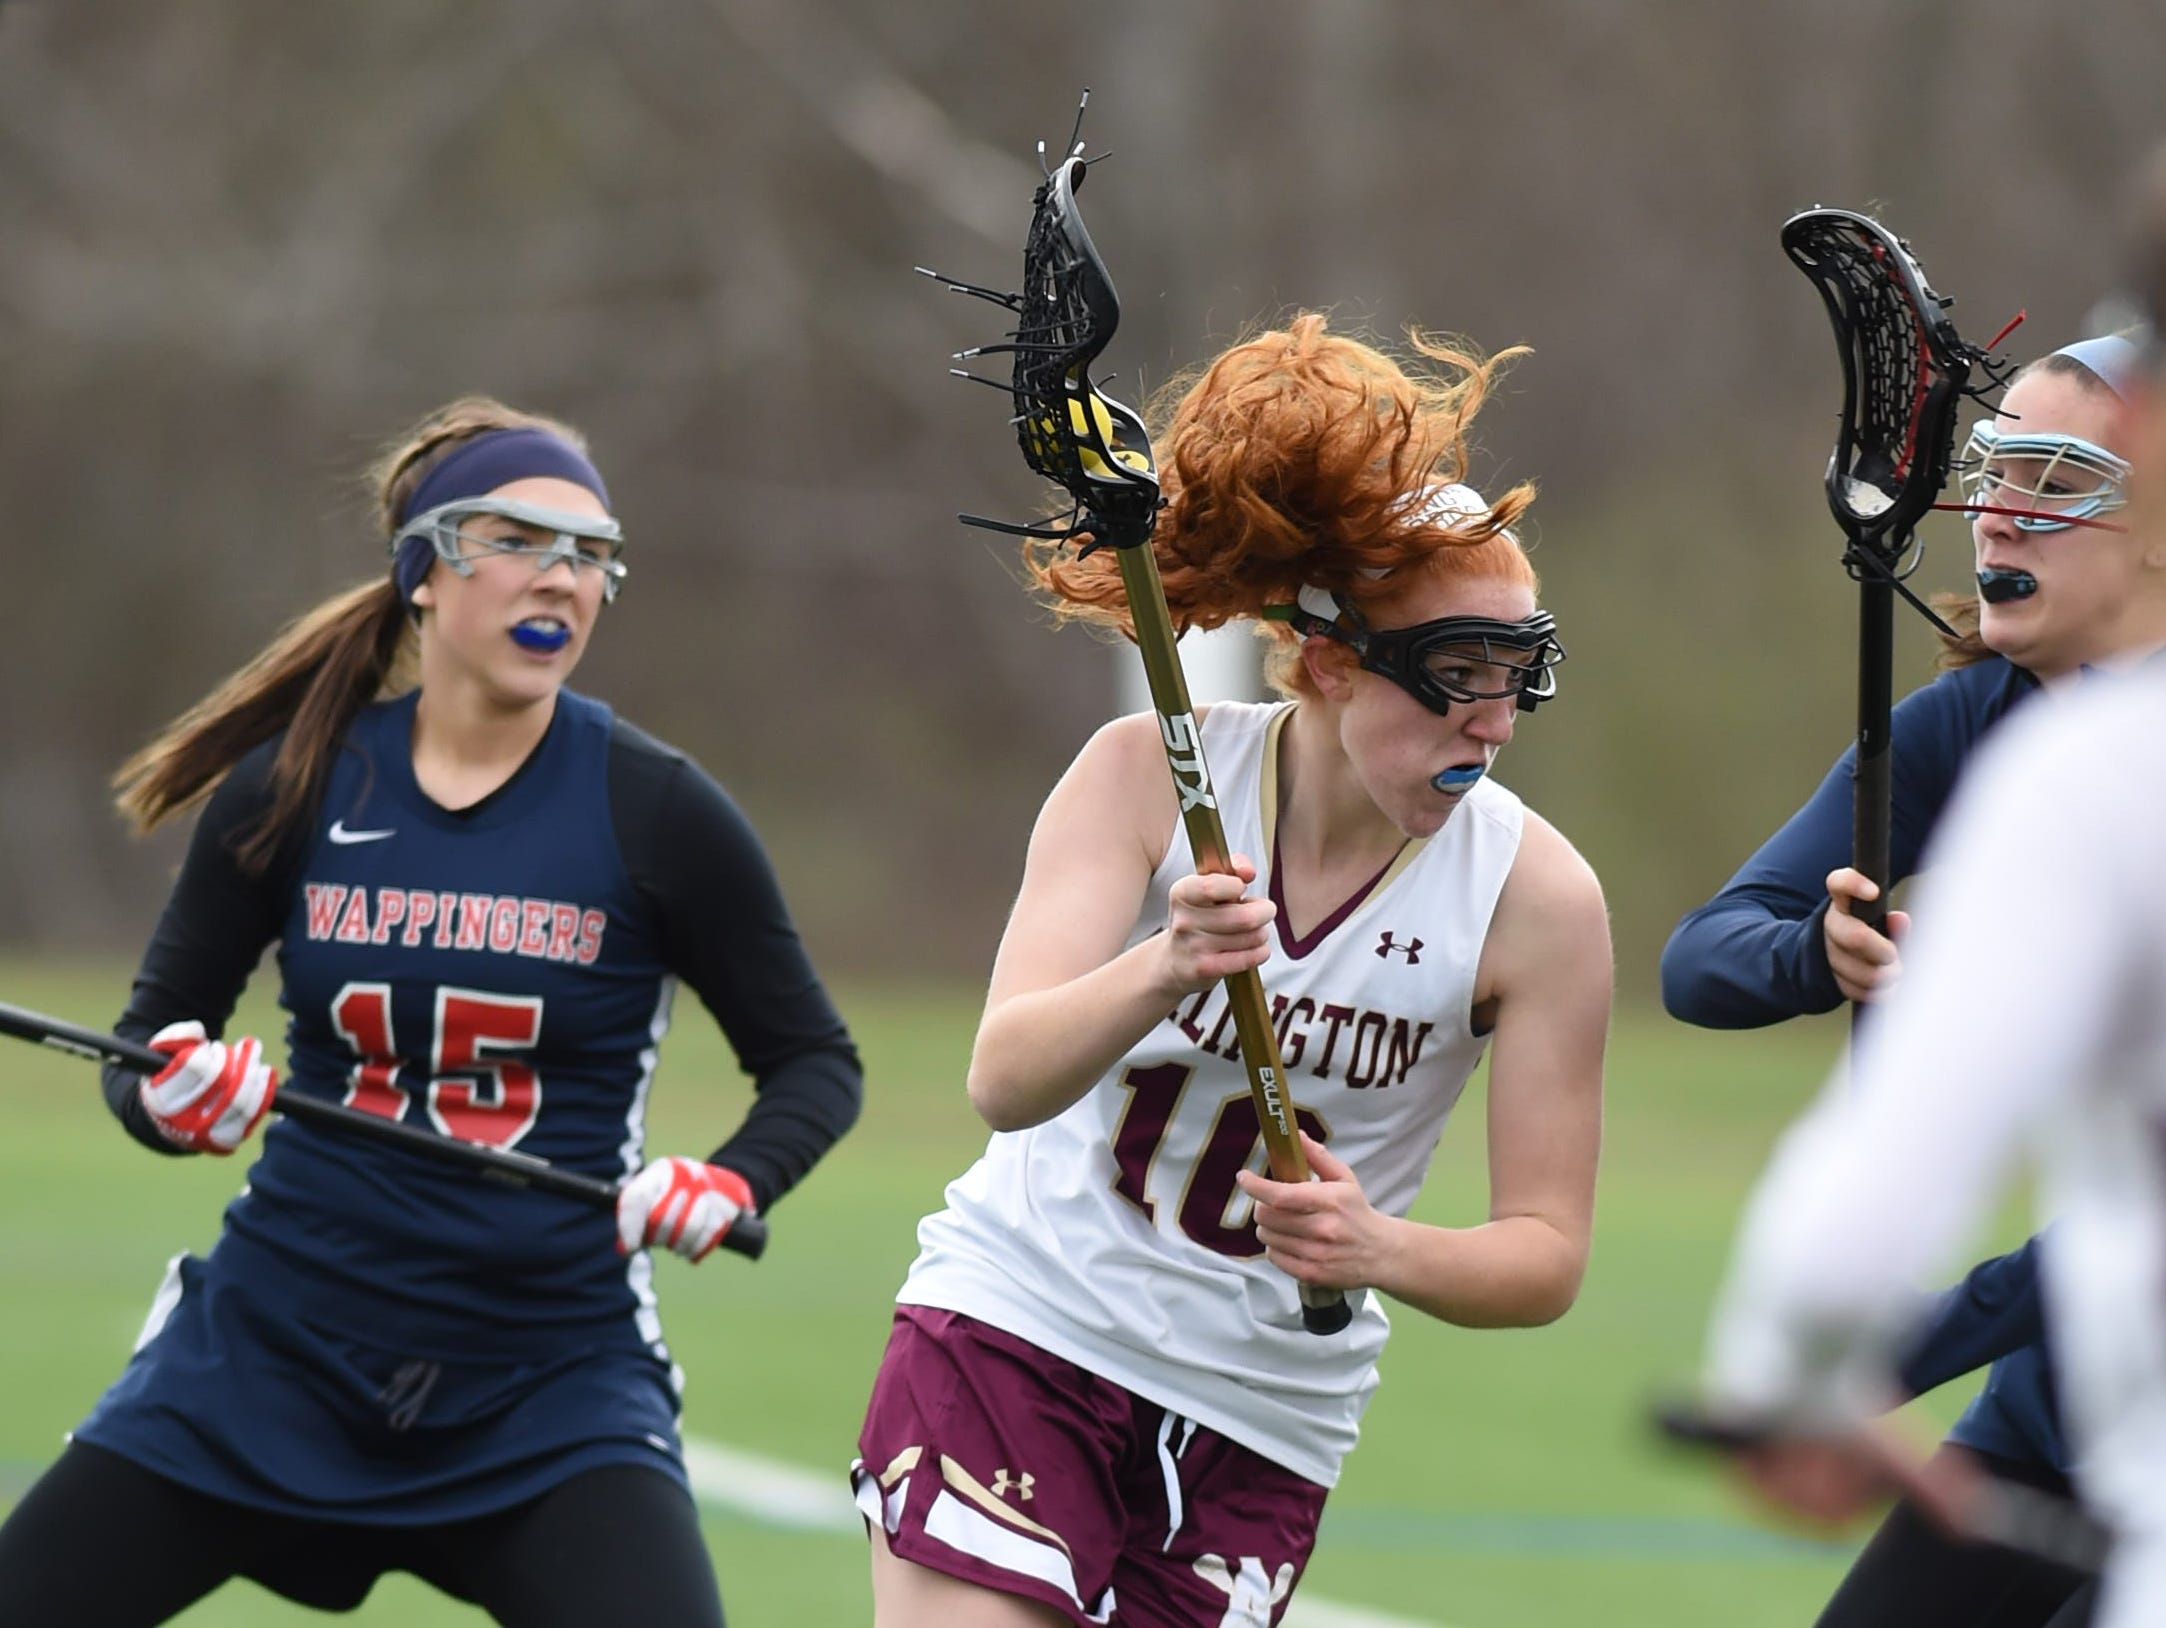 Arlington's Abby Carlin moments before scoring the third goal in Friday's game versus Wappingers at Arlington High School.